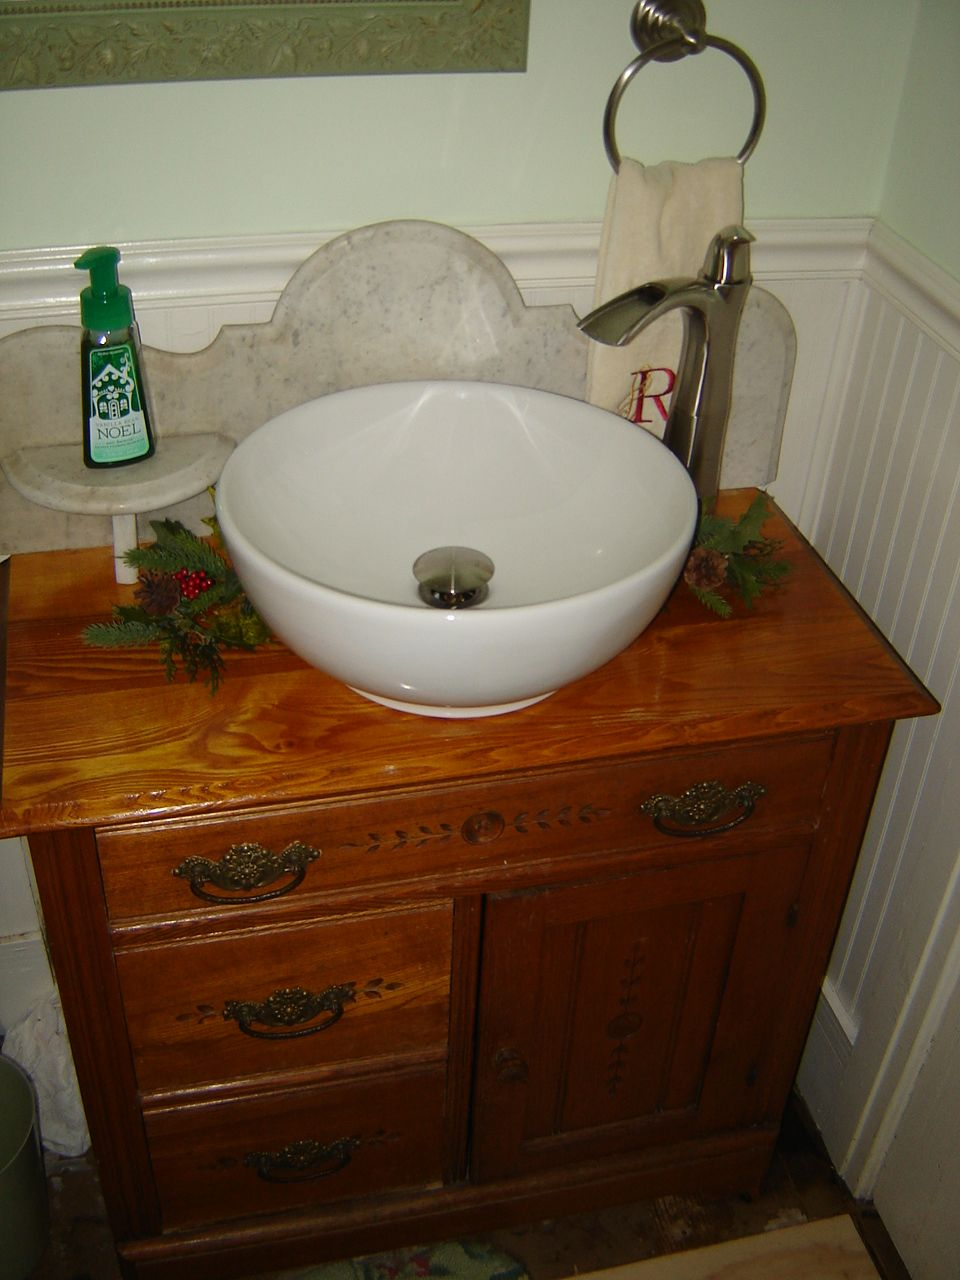 This Is The Antique Washstand We Turned Into A Vanity. The Vessel Sink Was  From Loweu0027s. The Antique Washstand Was Found In A Barn Down The Street From  My ...